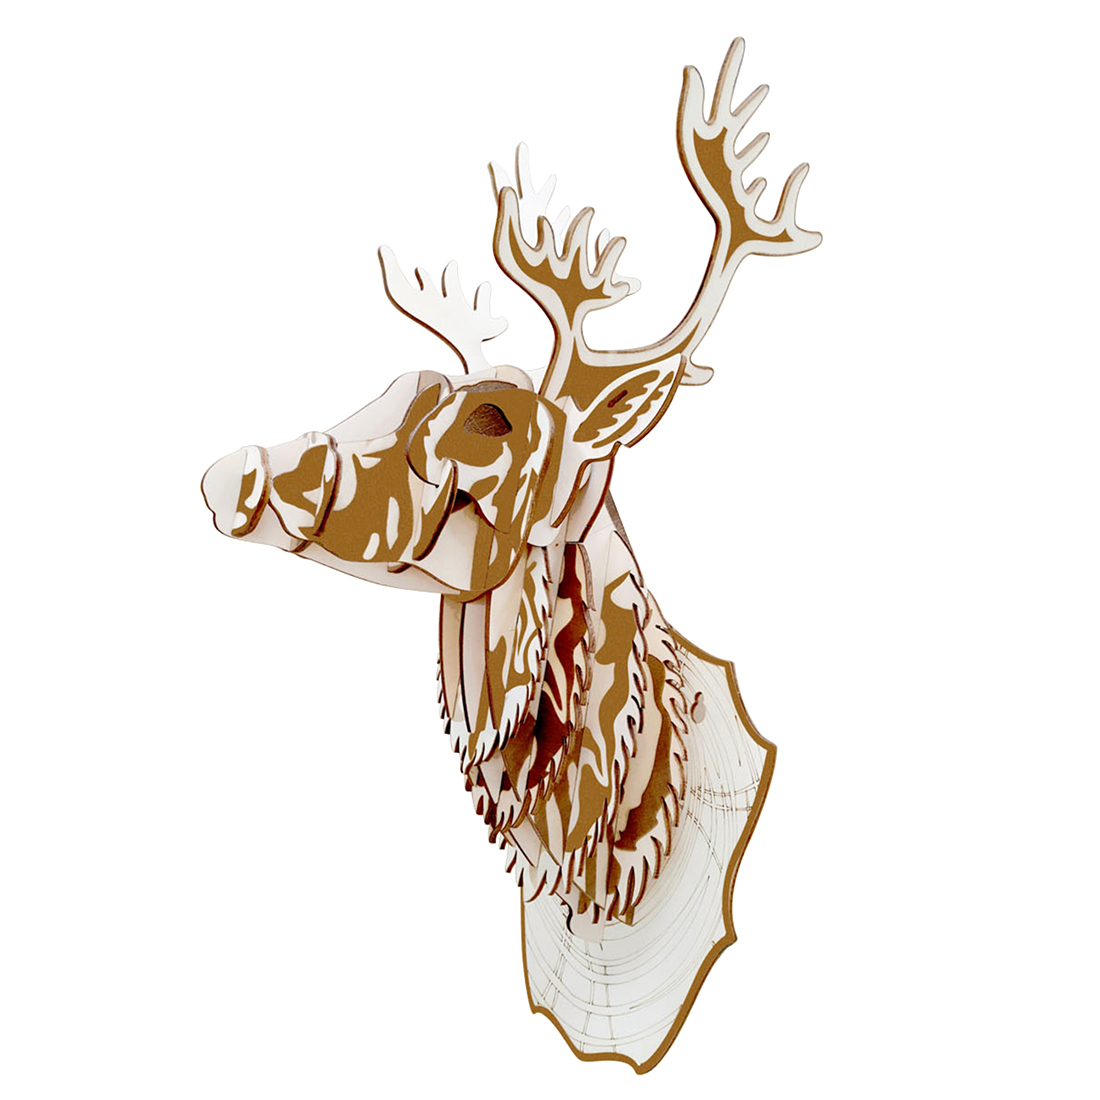 High Precision Laser Cutting Puzzle 3D Jigsaw Wooden Model Building Kits Toys For Kids Children Adults Gift Deer Head